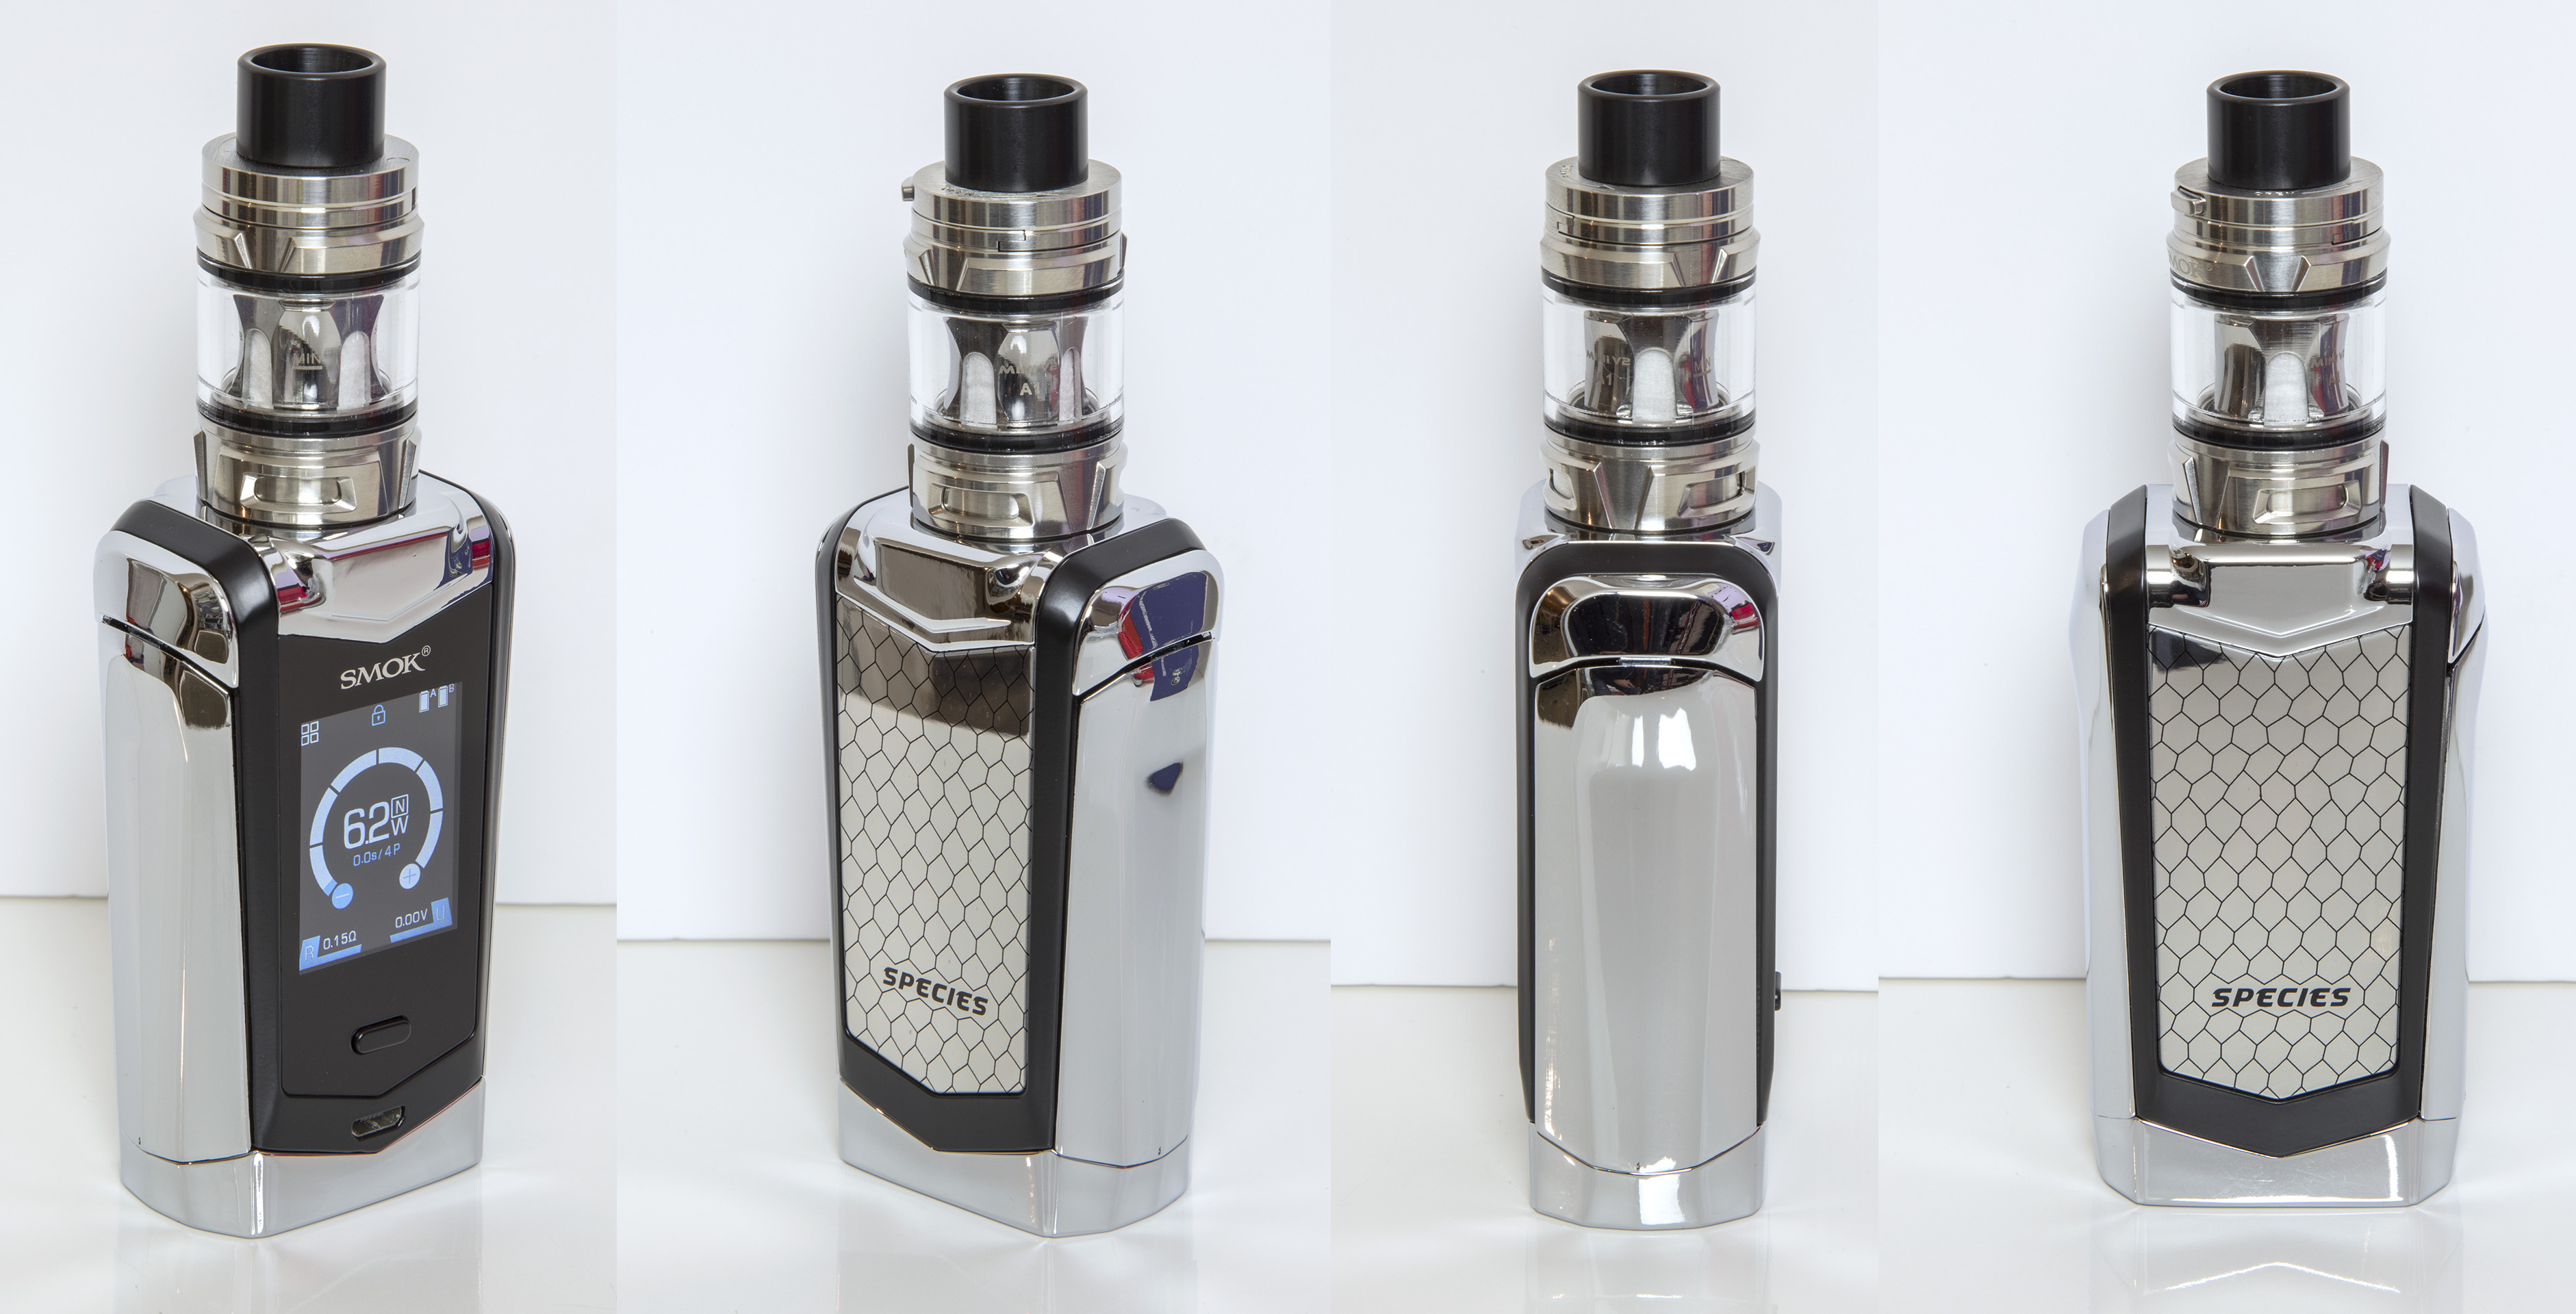 SMOK SPECIES 230W TOUCH SCREEN KIT + Upgrade | Vaping Forum - Planet